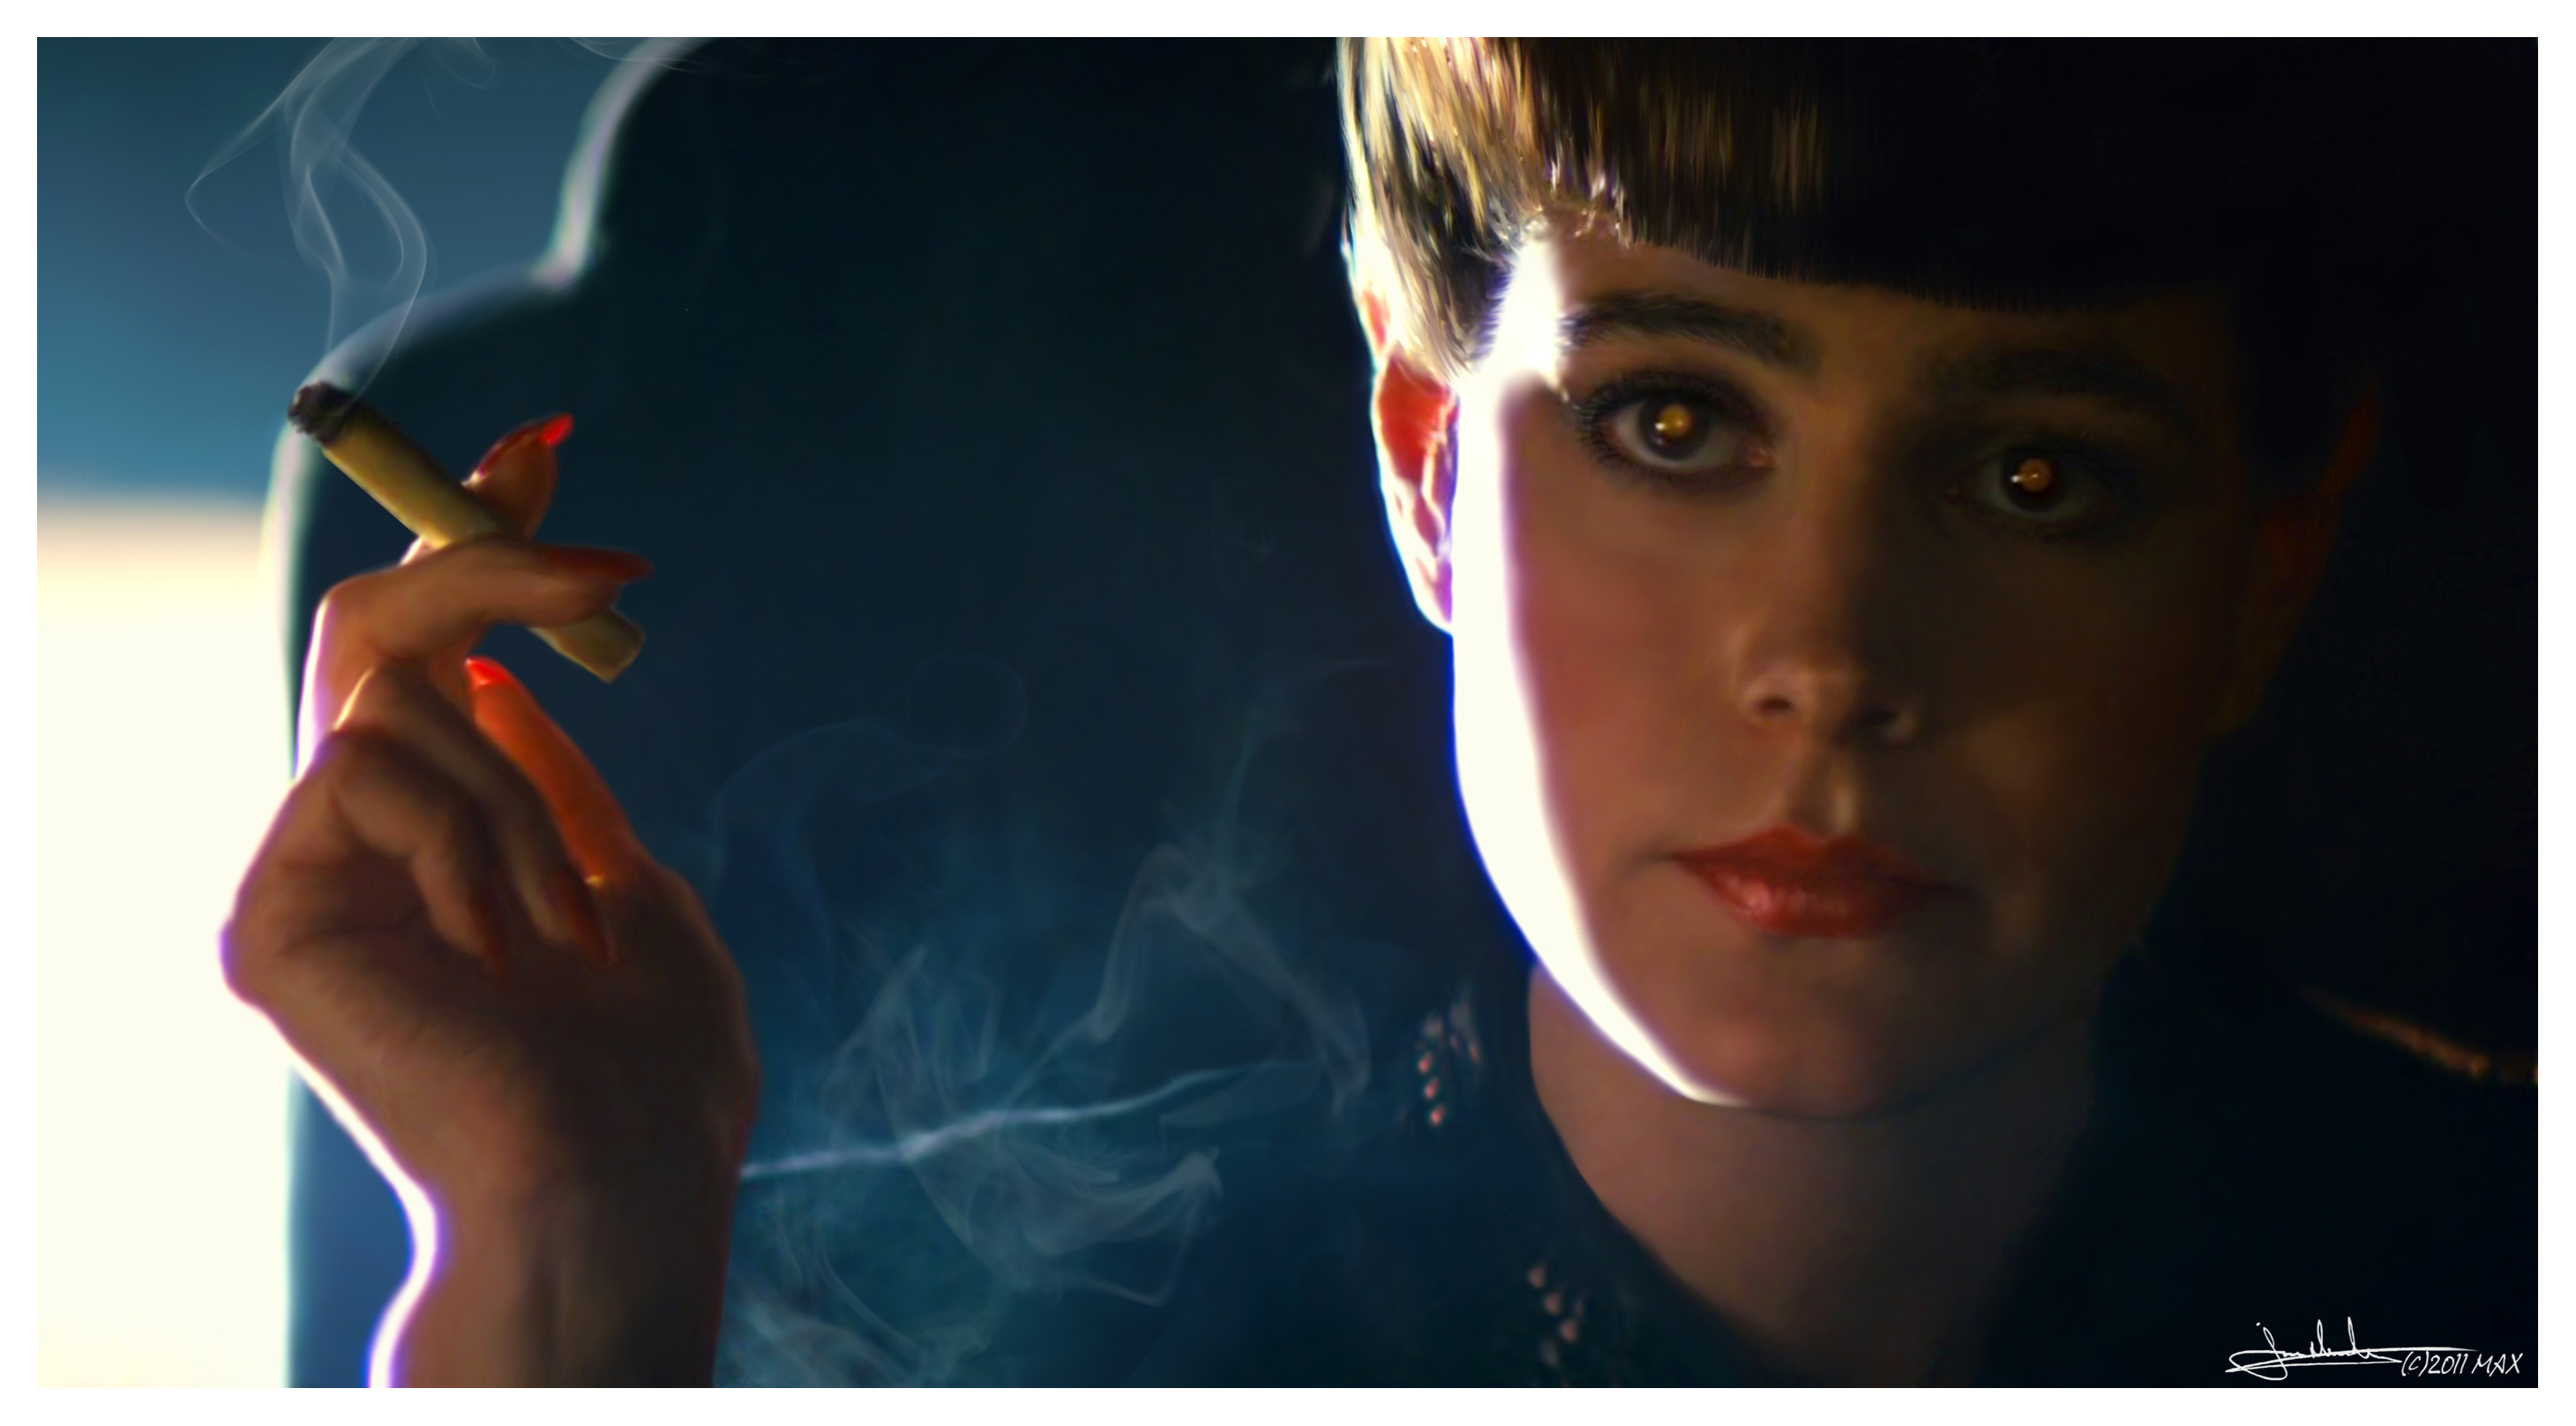 an examination of the replicants in the dystopian world in the film blade runner